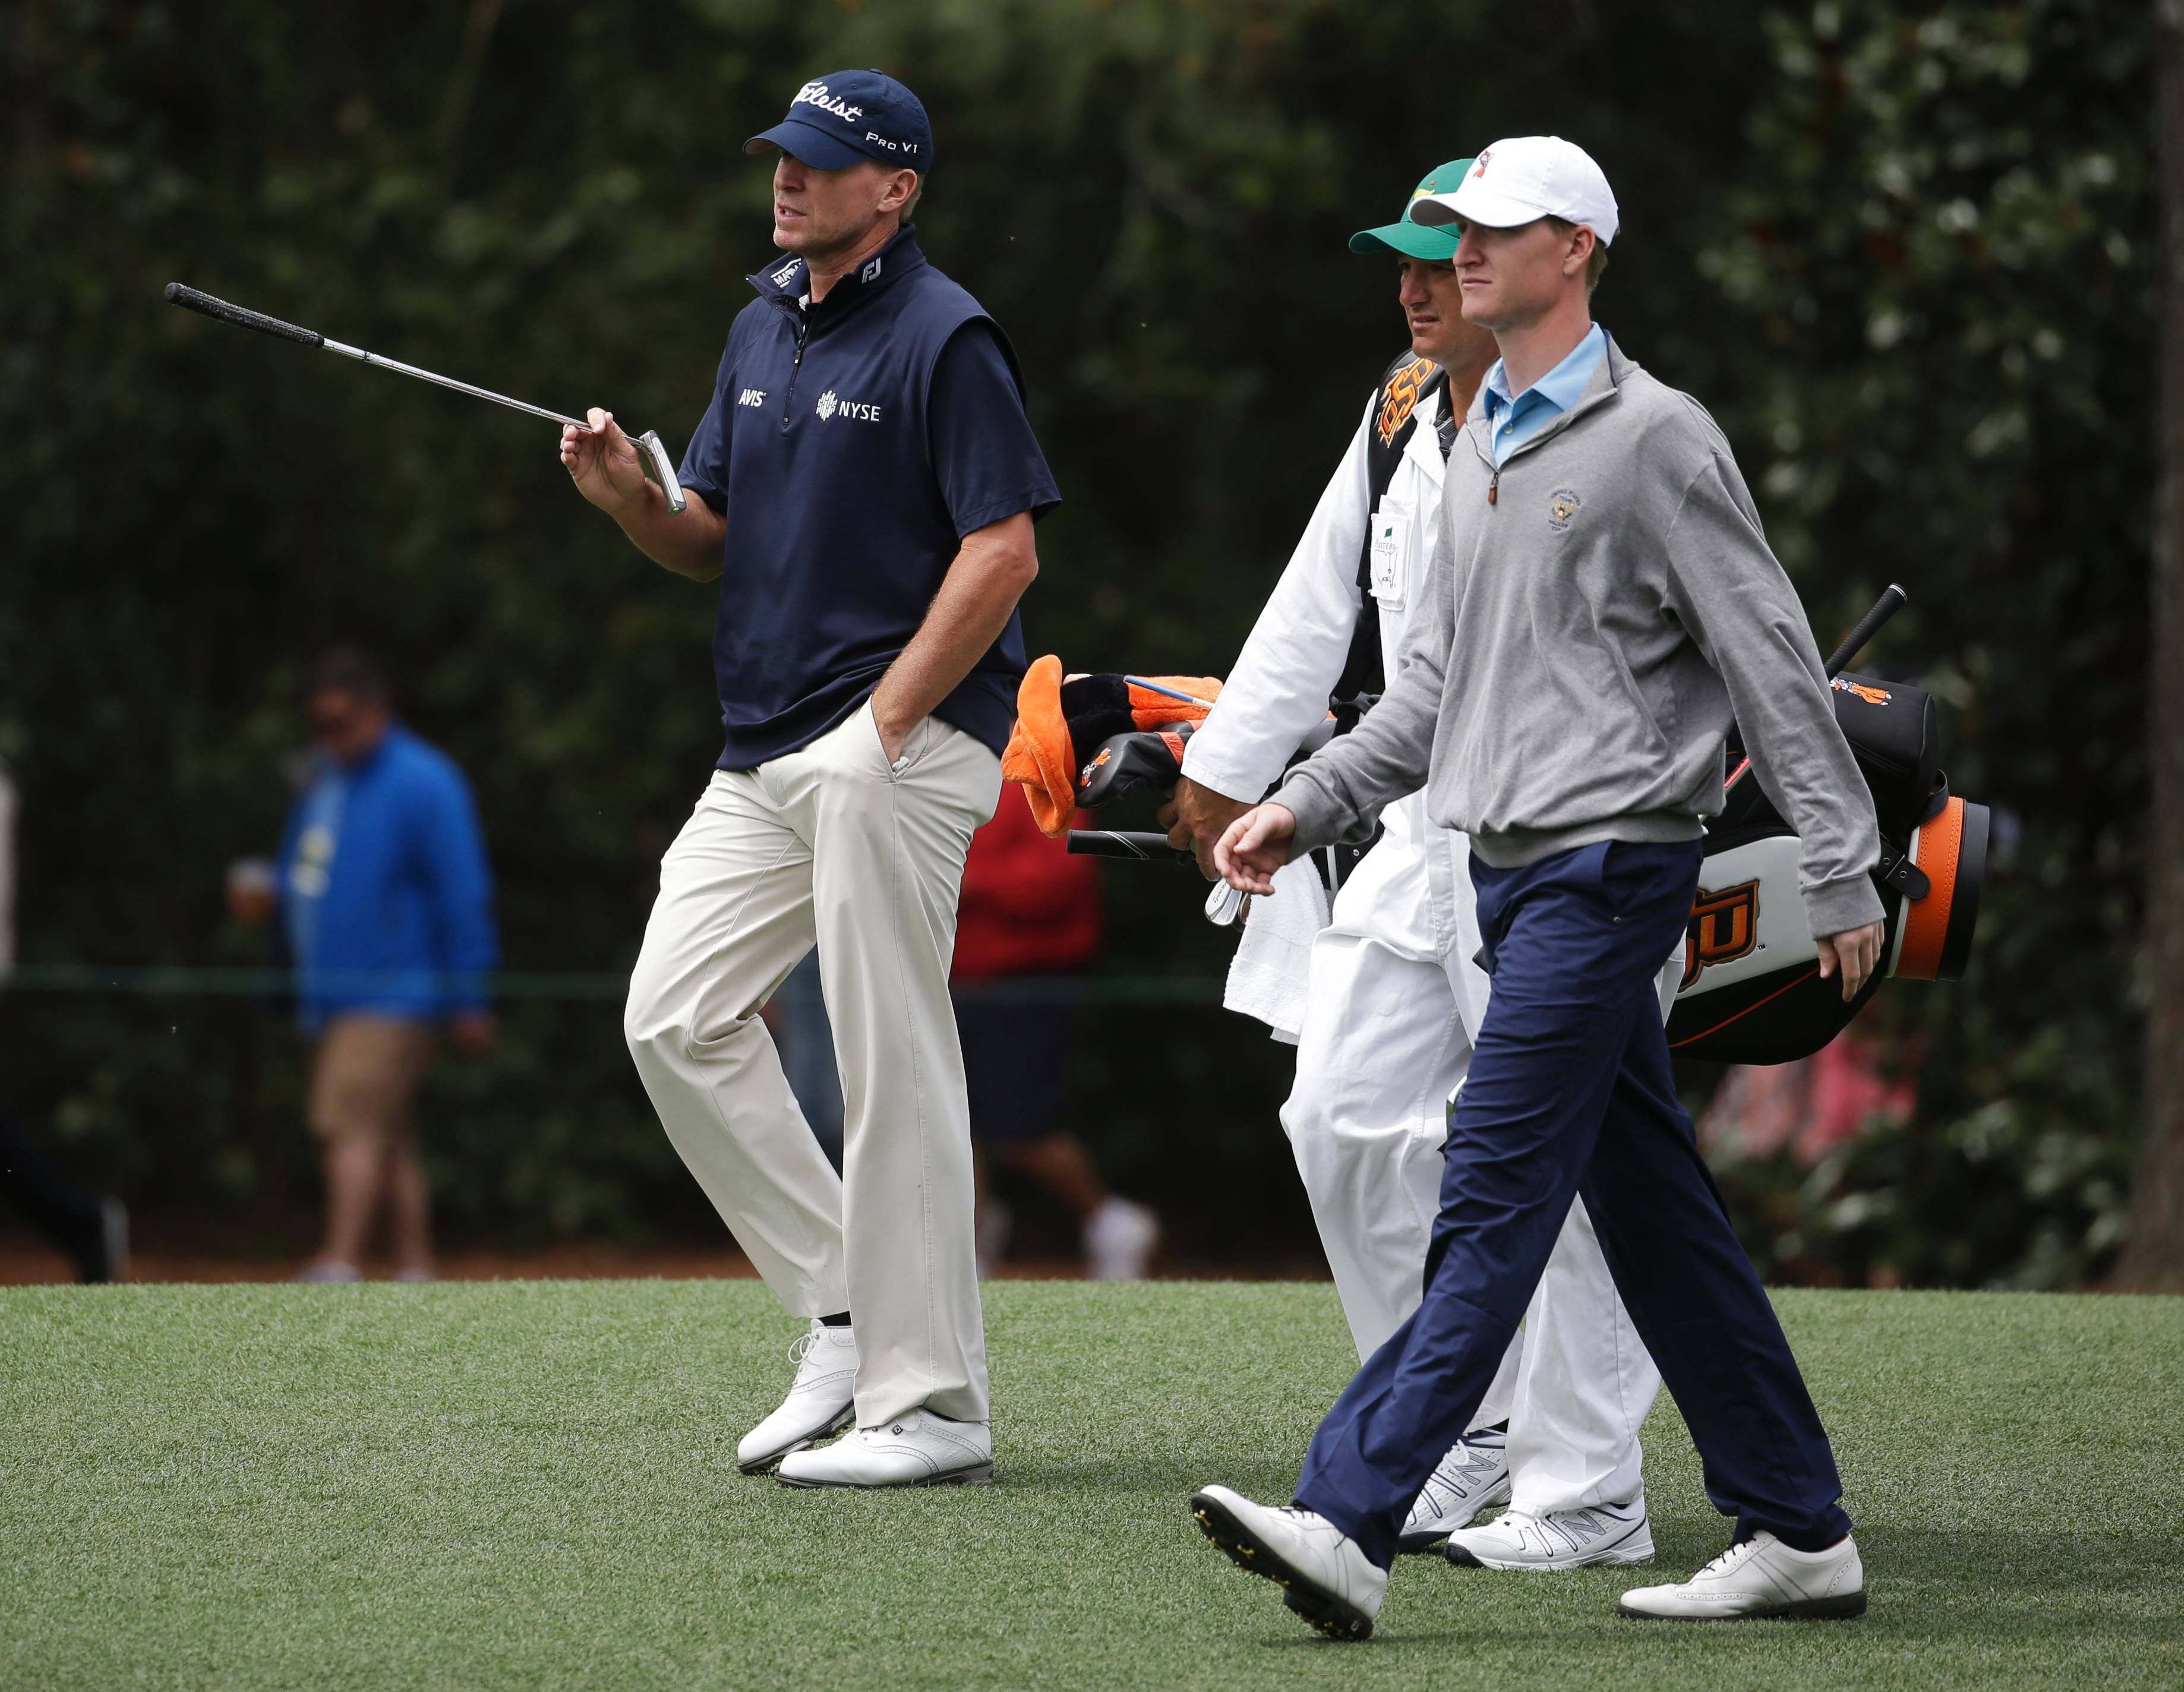 With their Wisconsin upbringing, Steve Stricker, left, and amateur champ Jordan Niebrugge, right, have more in common than the game of golf.